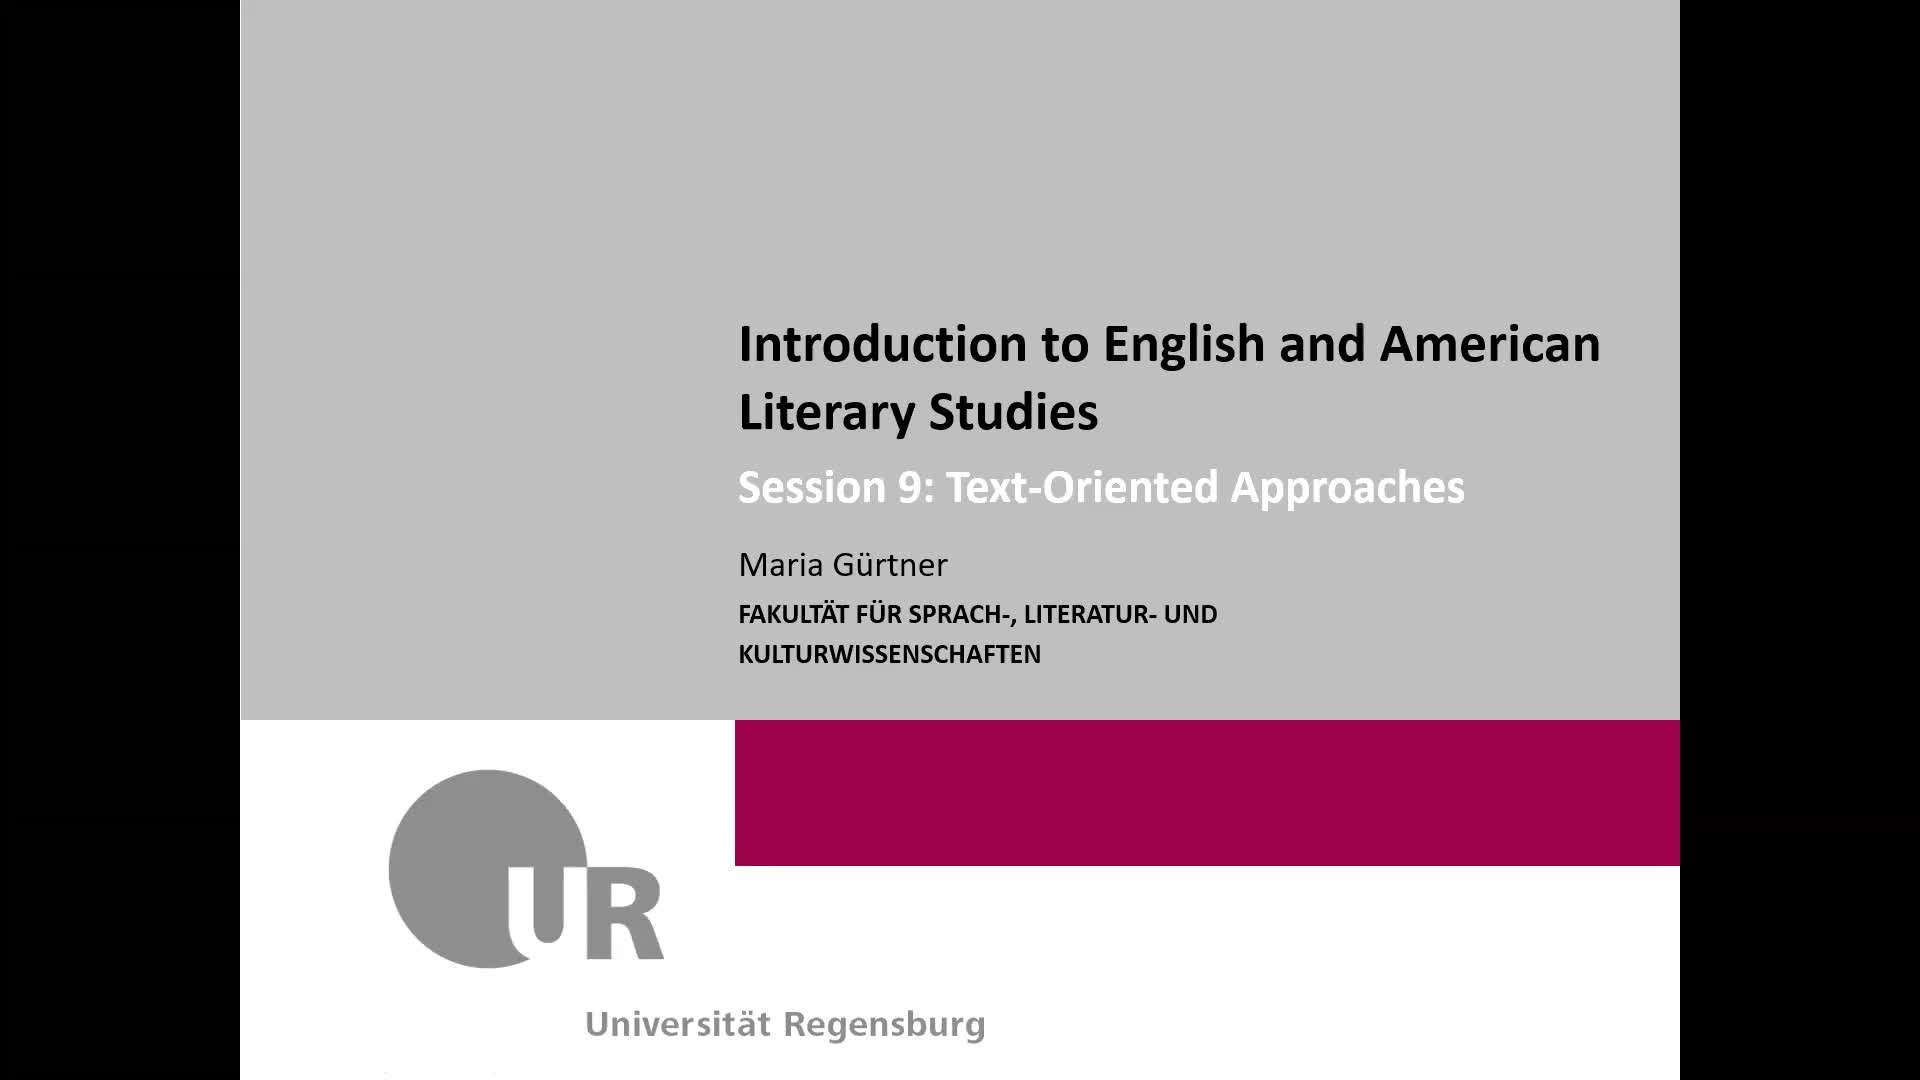 Session 9: Text-Oriented Approaches